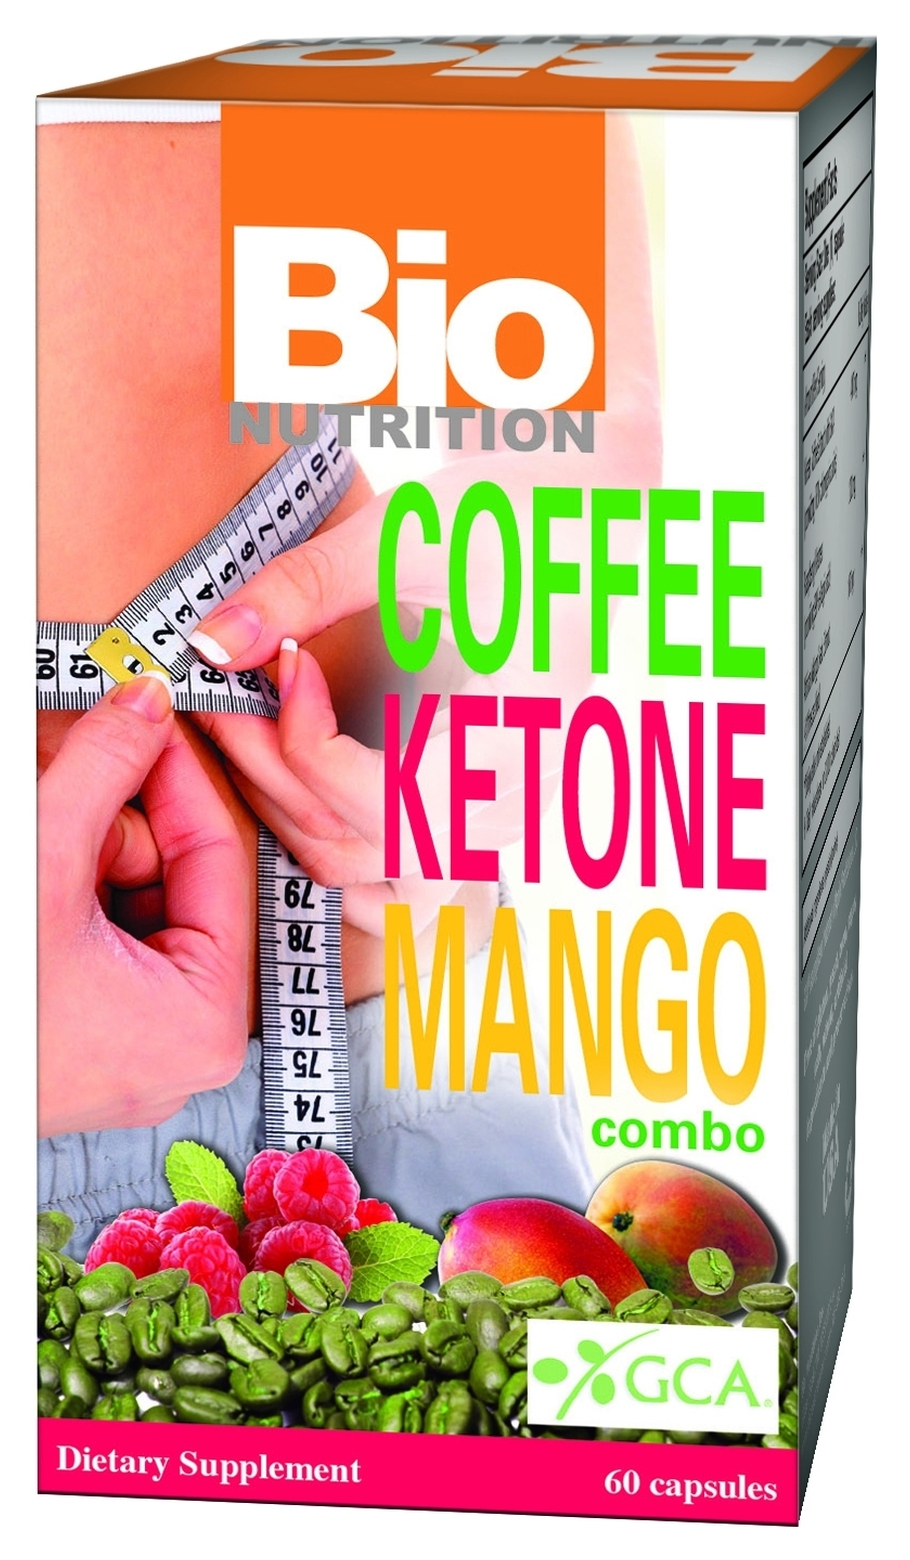 Coffee Ketone Mango Combo 60 caps by Bio Nutrition